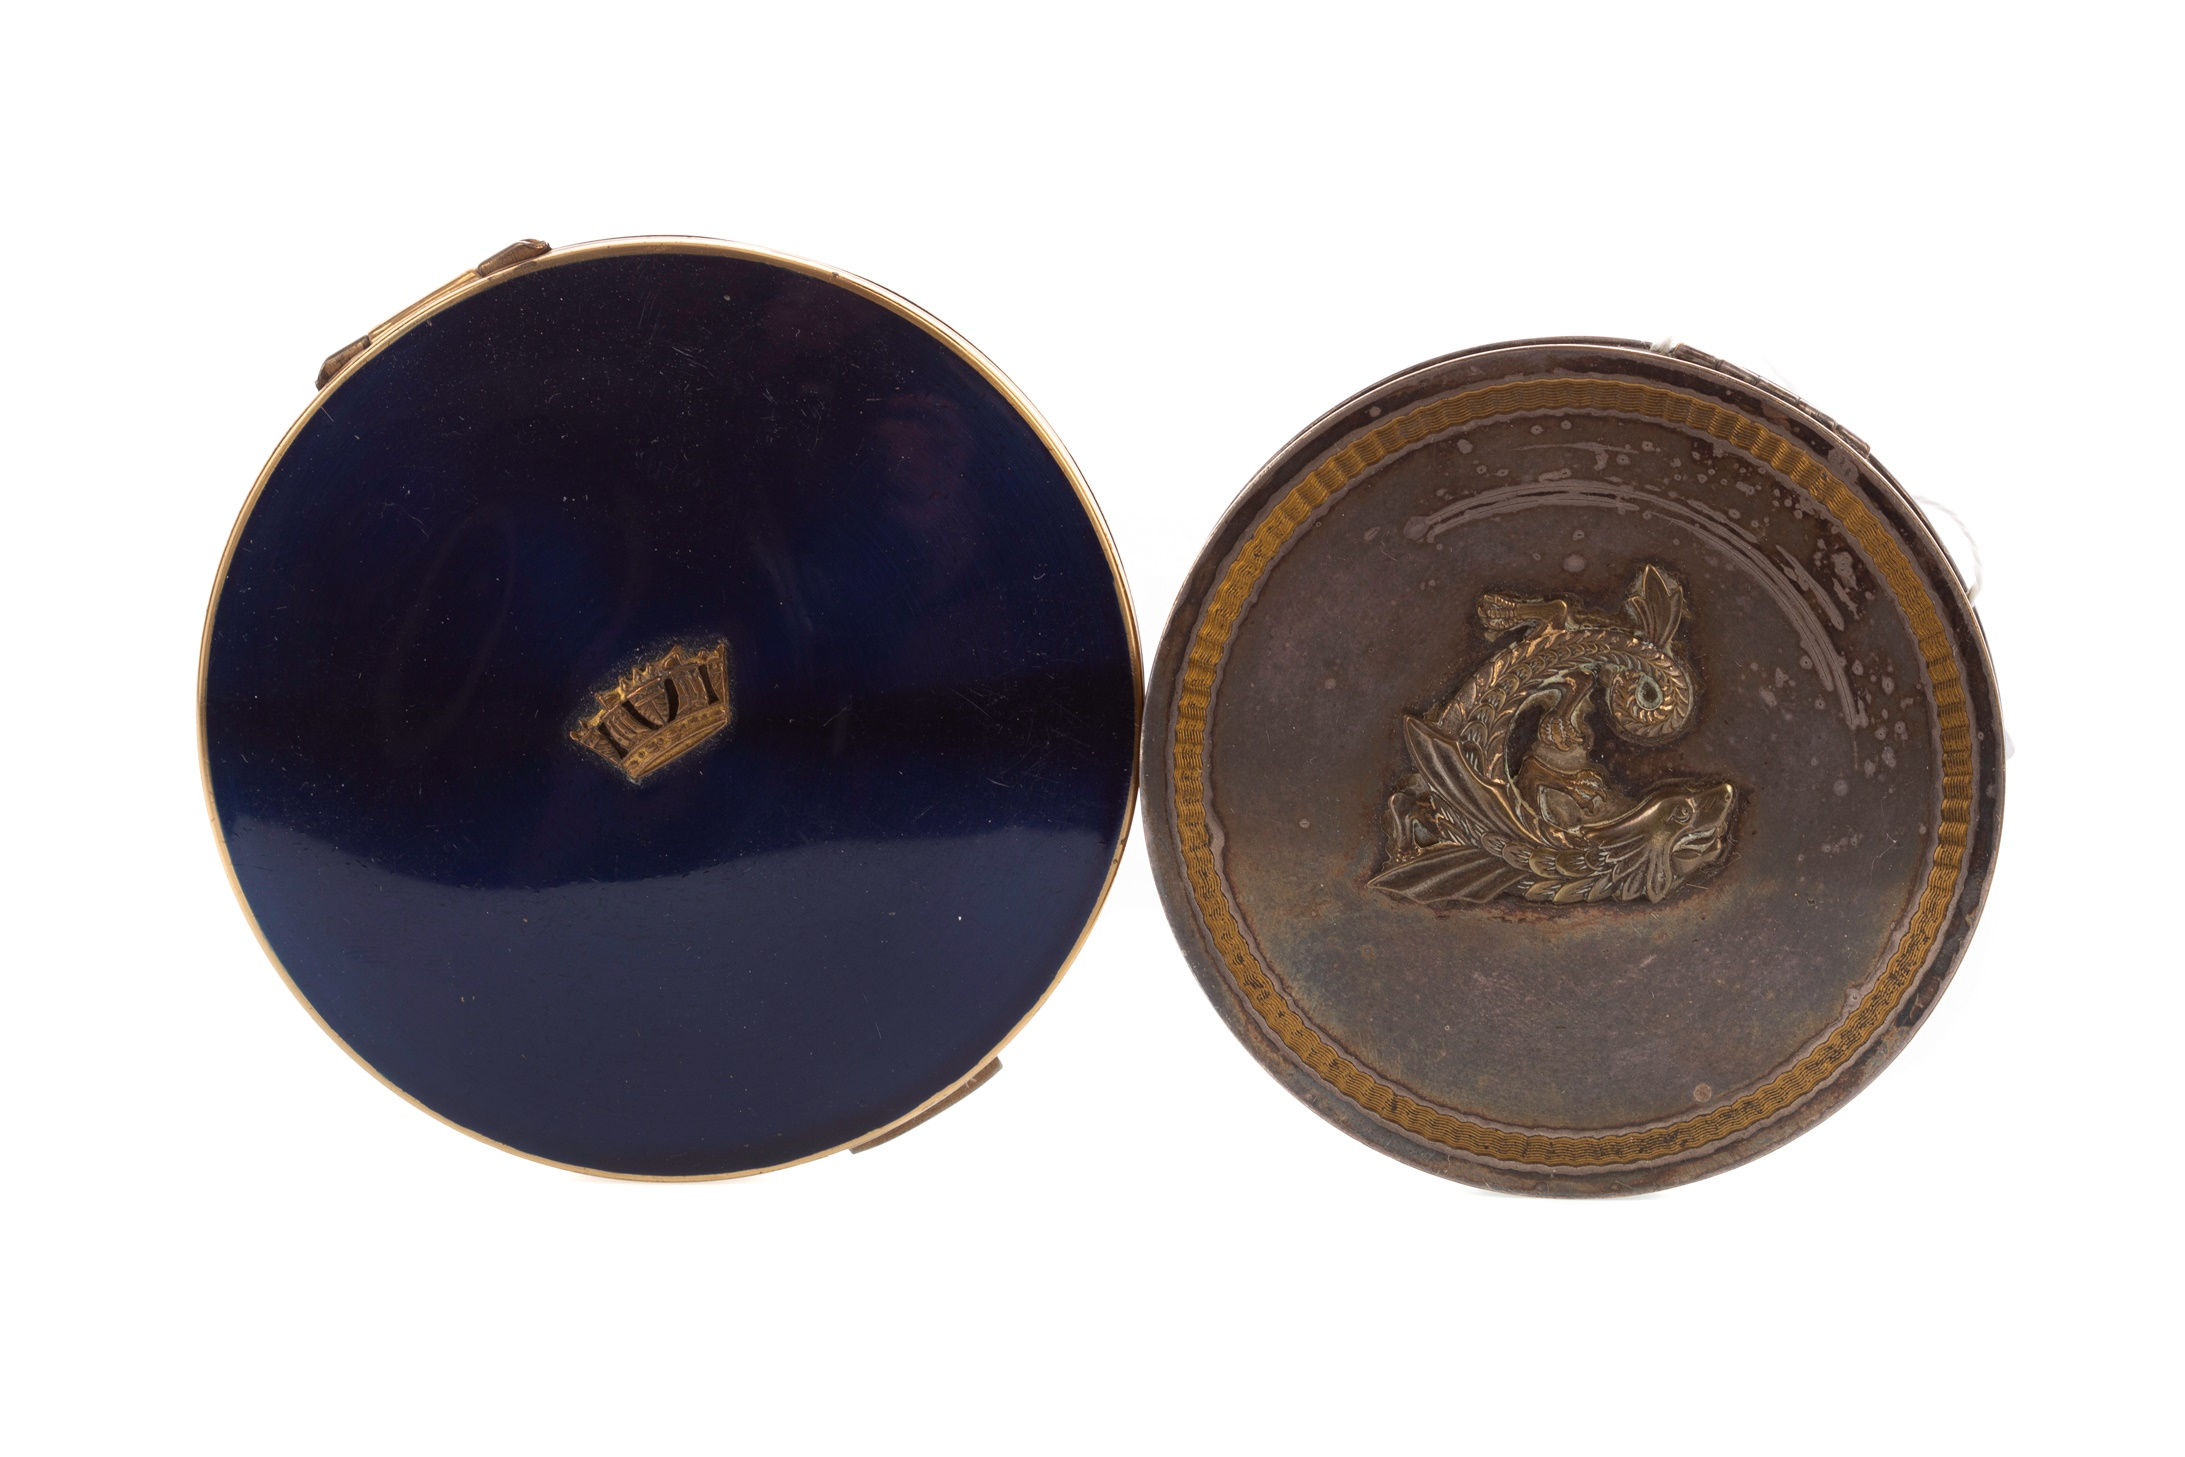 TWO EARLY 20TH CENTURY WHITE METAL COMPACTS